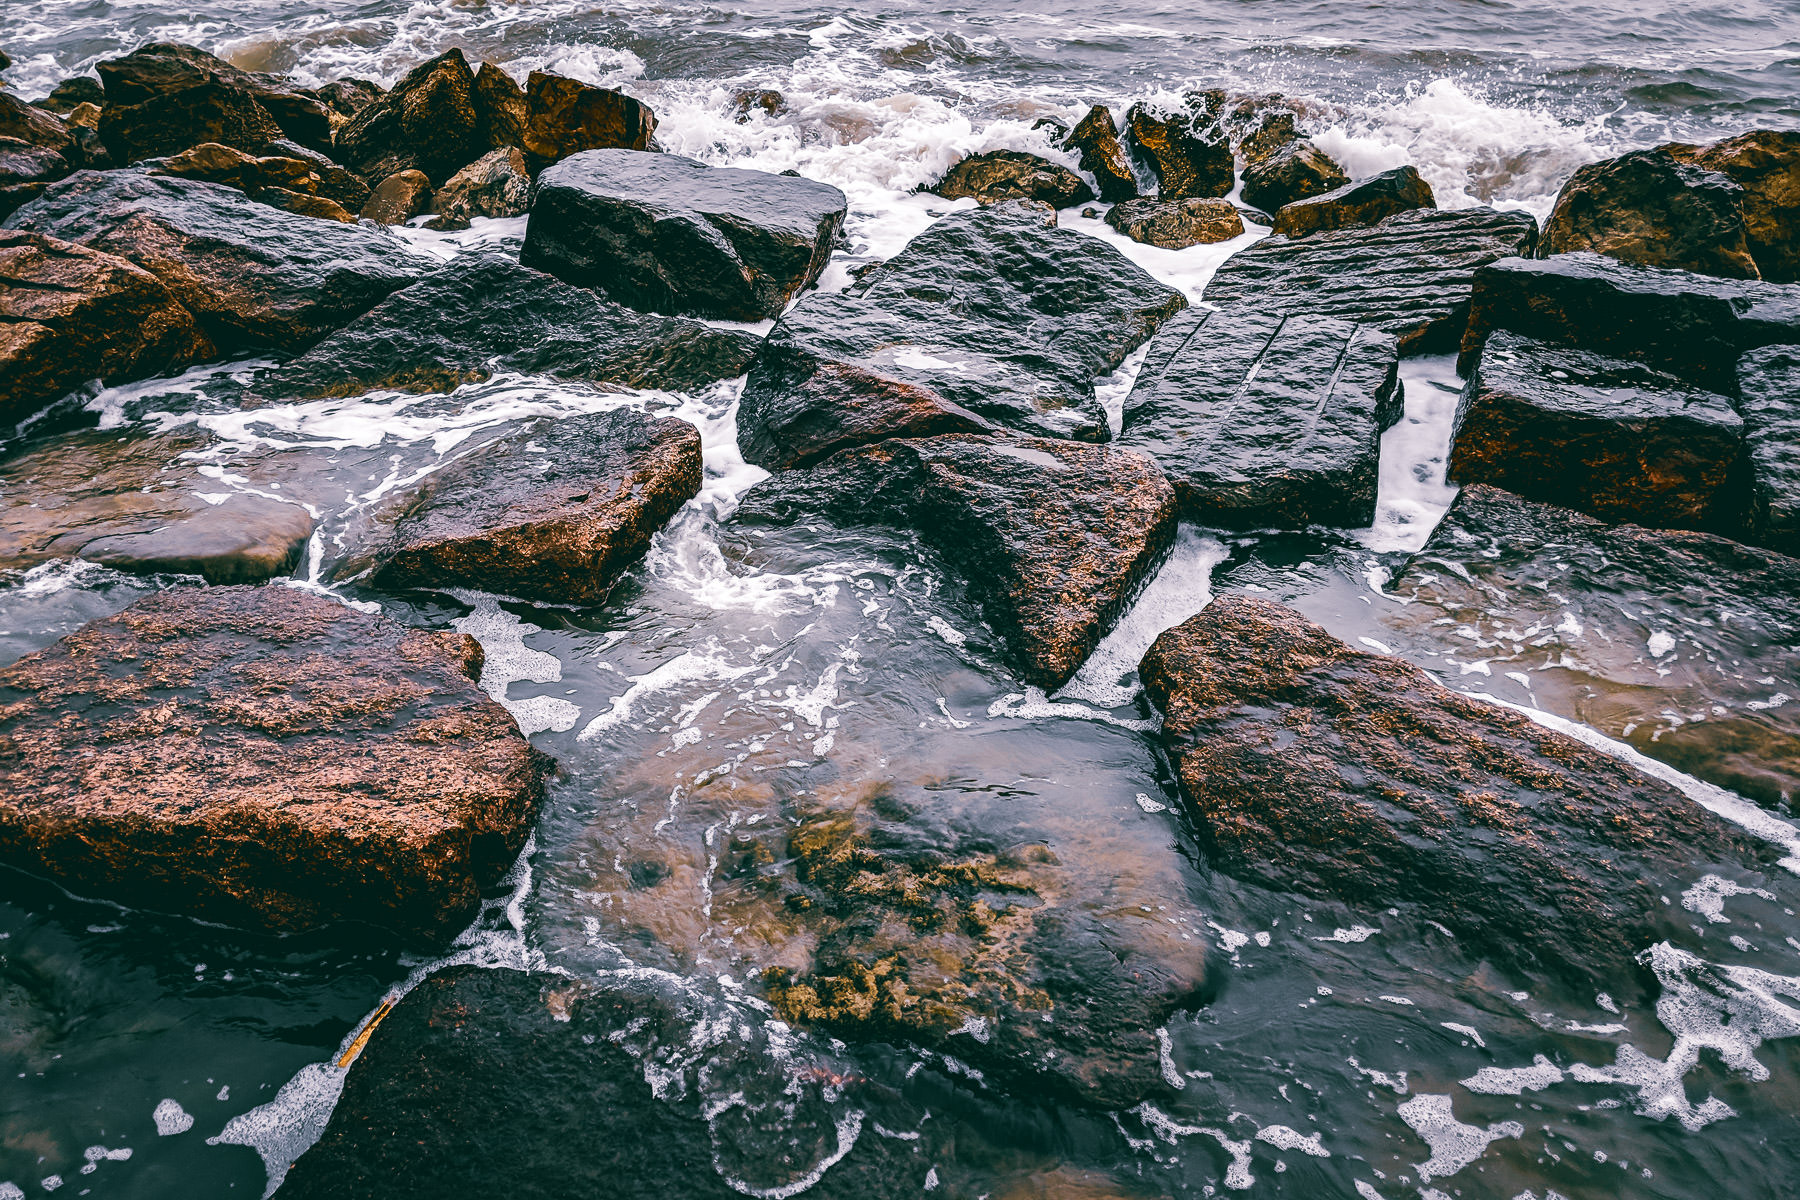 Granite blocks along the Galveston, Texas, seawall absorb the pounding surf of the Gulf of Mexico.